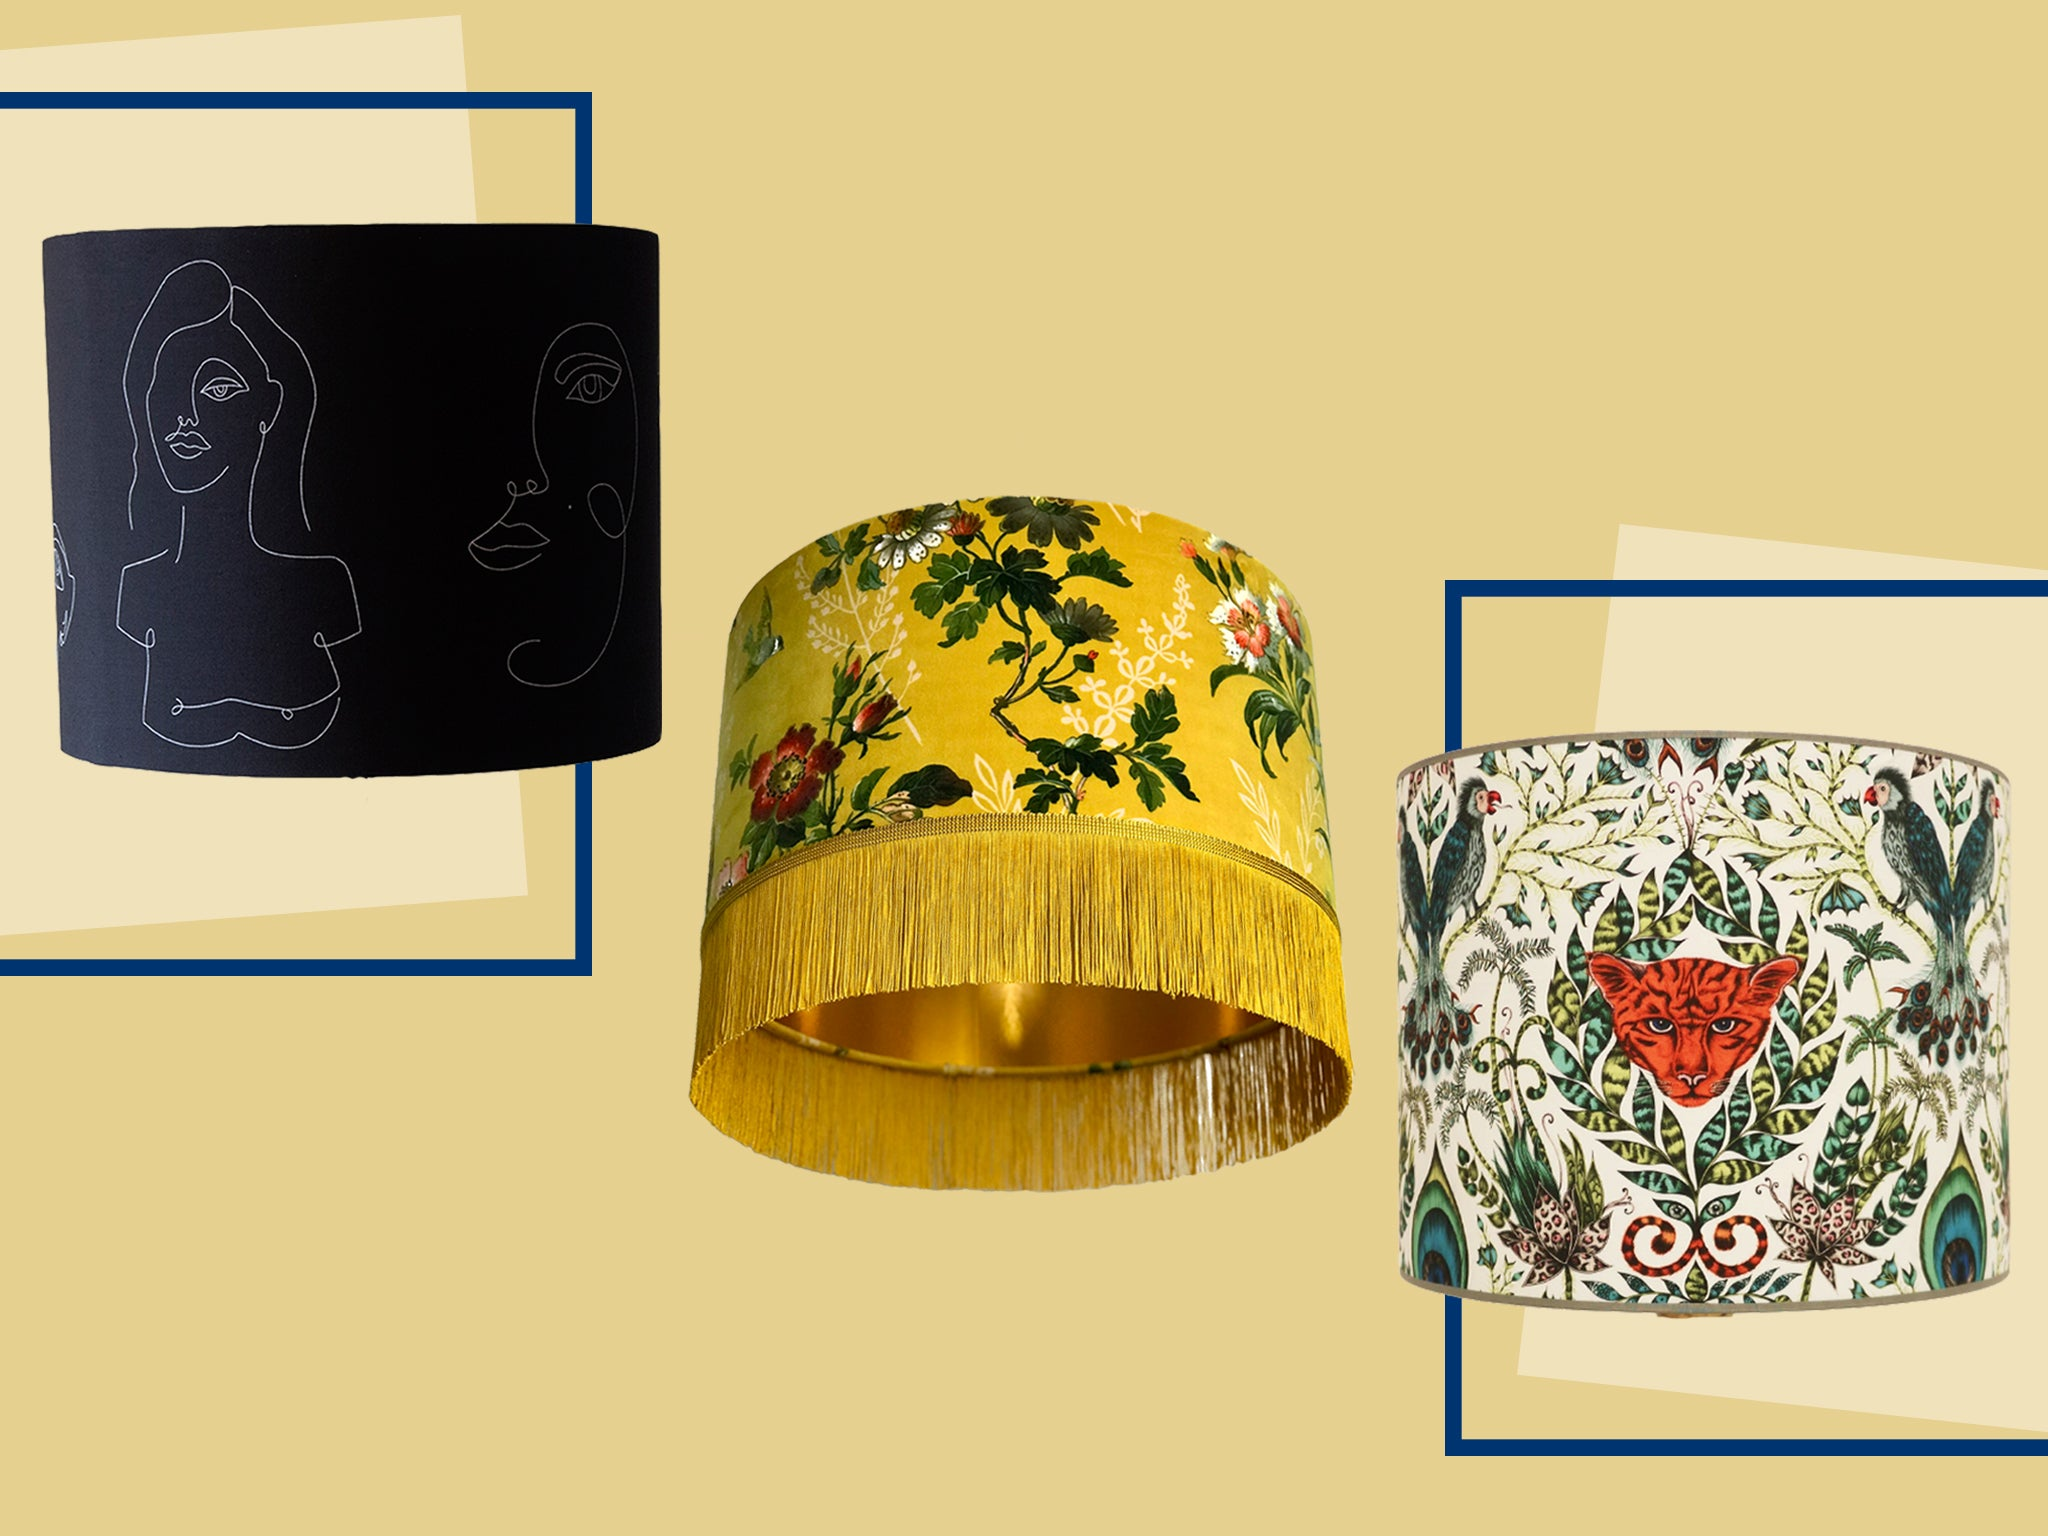 Best lampshades for your room